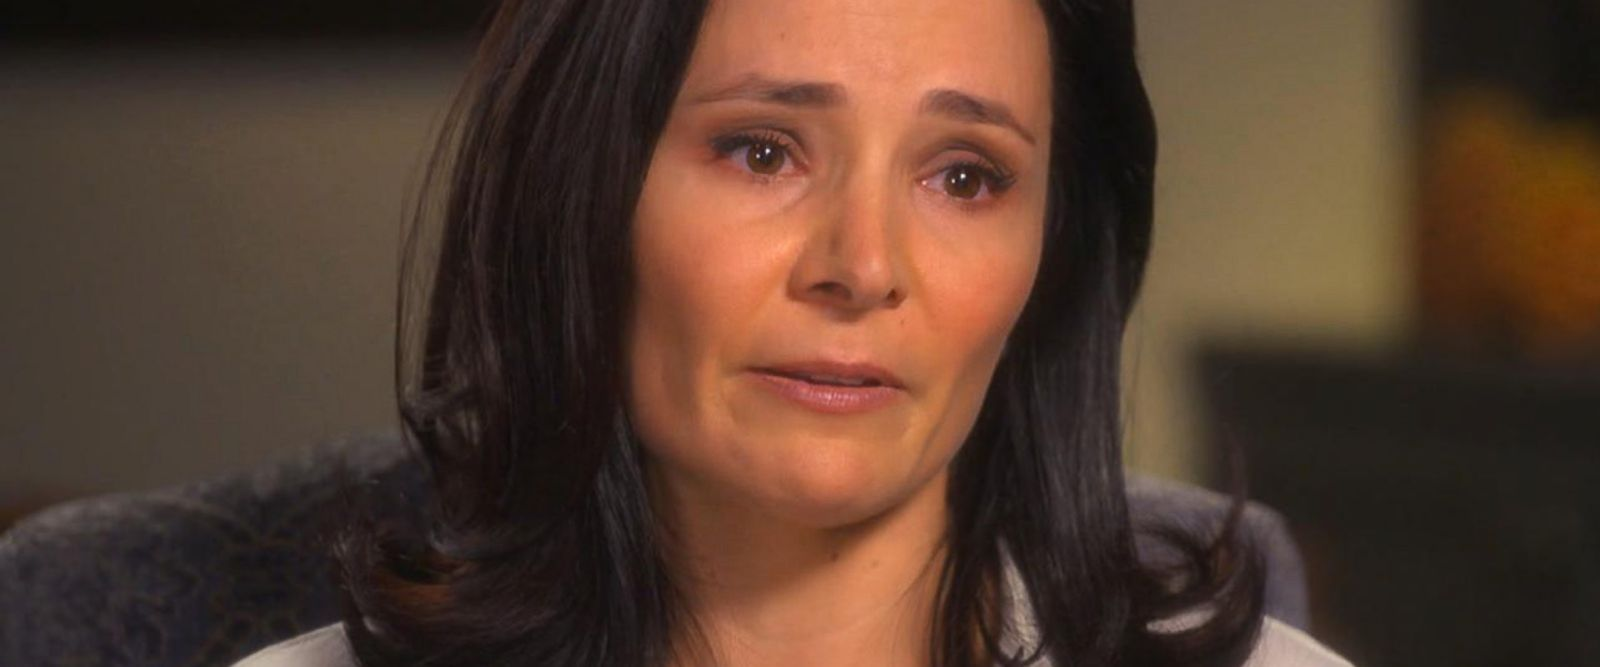 VIDEO: Former NXIVM member says she was branded when invited to secret sorority: Part 1